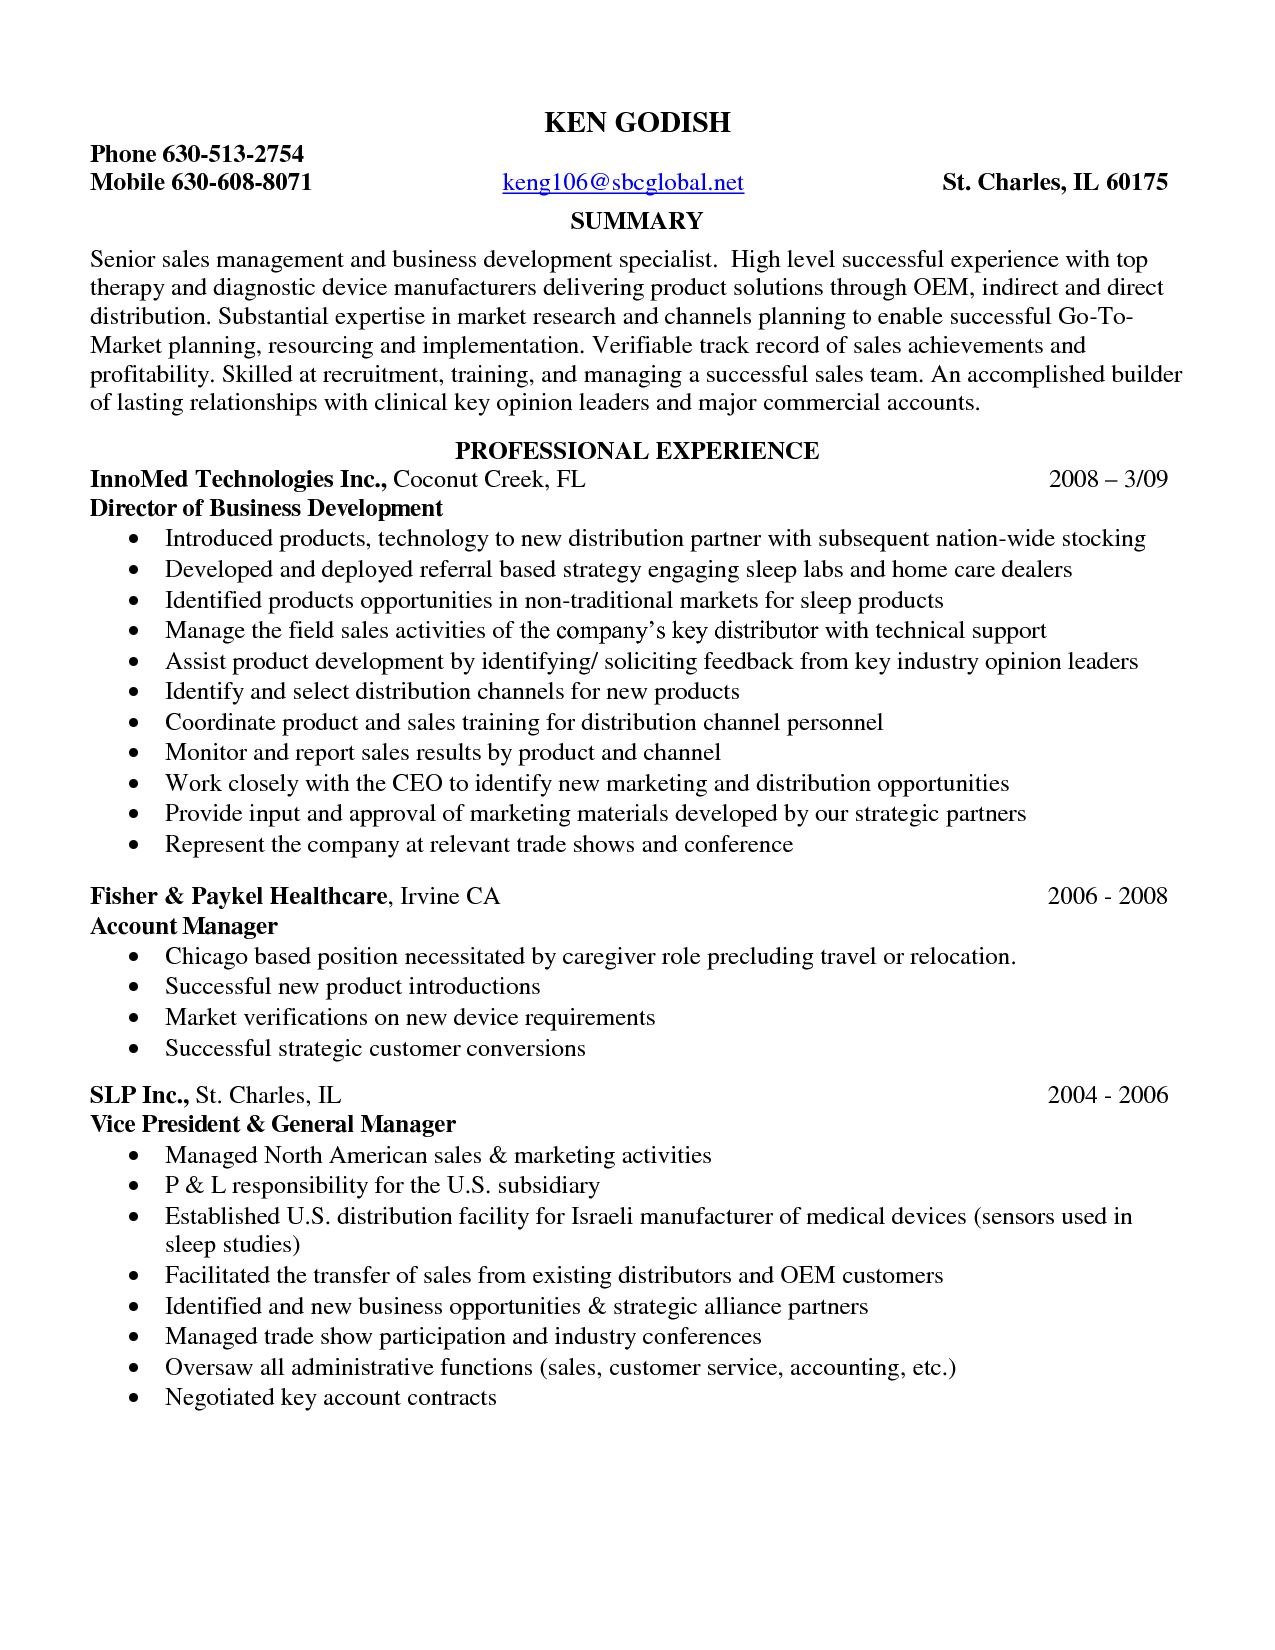 Exceptional Sample Resume Entry Level Pharmaceutical Sales Sample Resume Entry Levelu2026 With Medical Sales Resume Examples